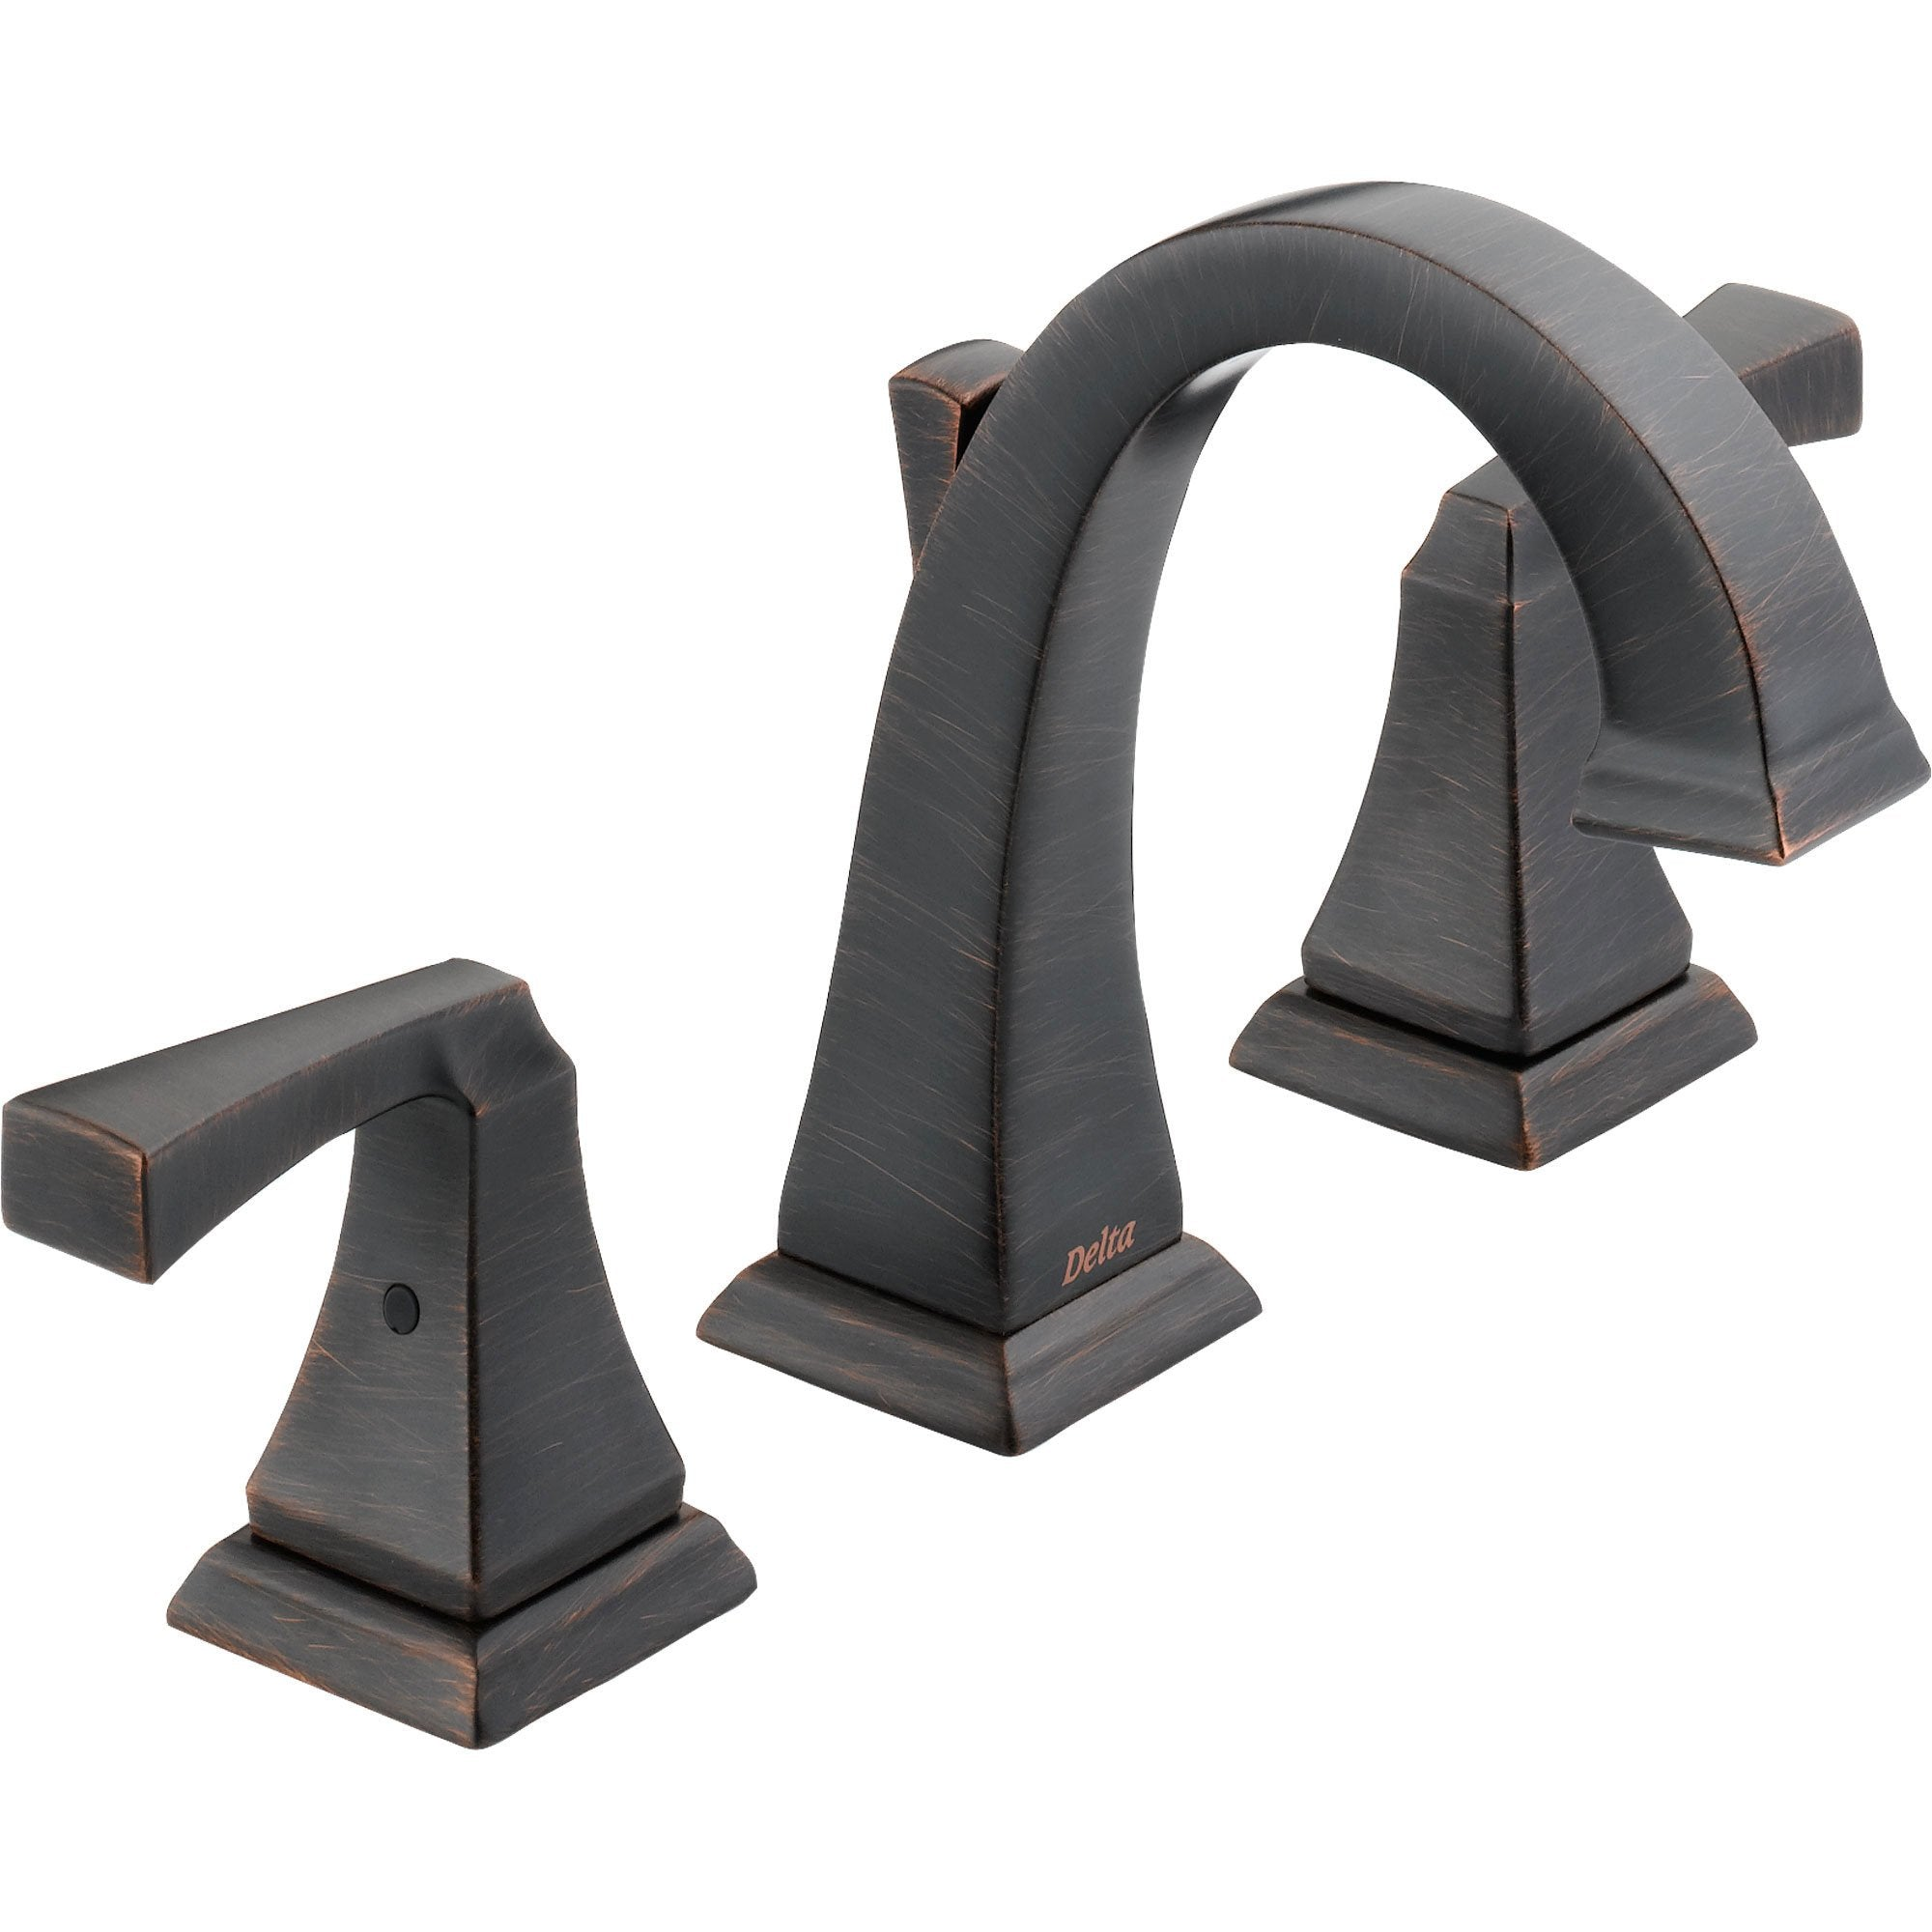 Delta Dryden Modern High Arc Venetian Bronze Widespread Bathroom Faucet 474219